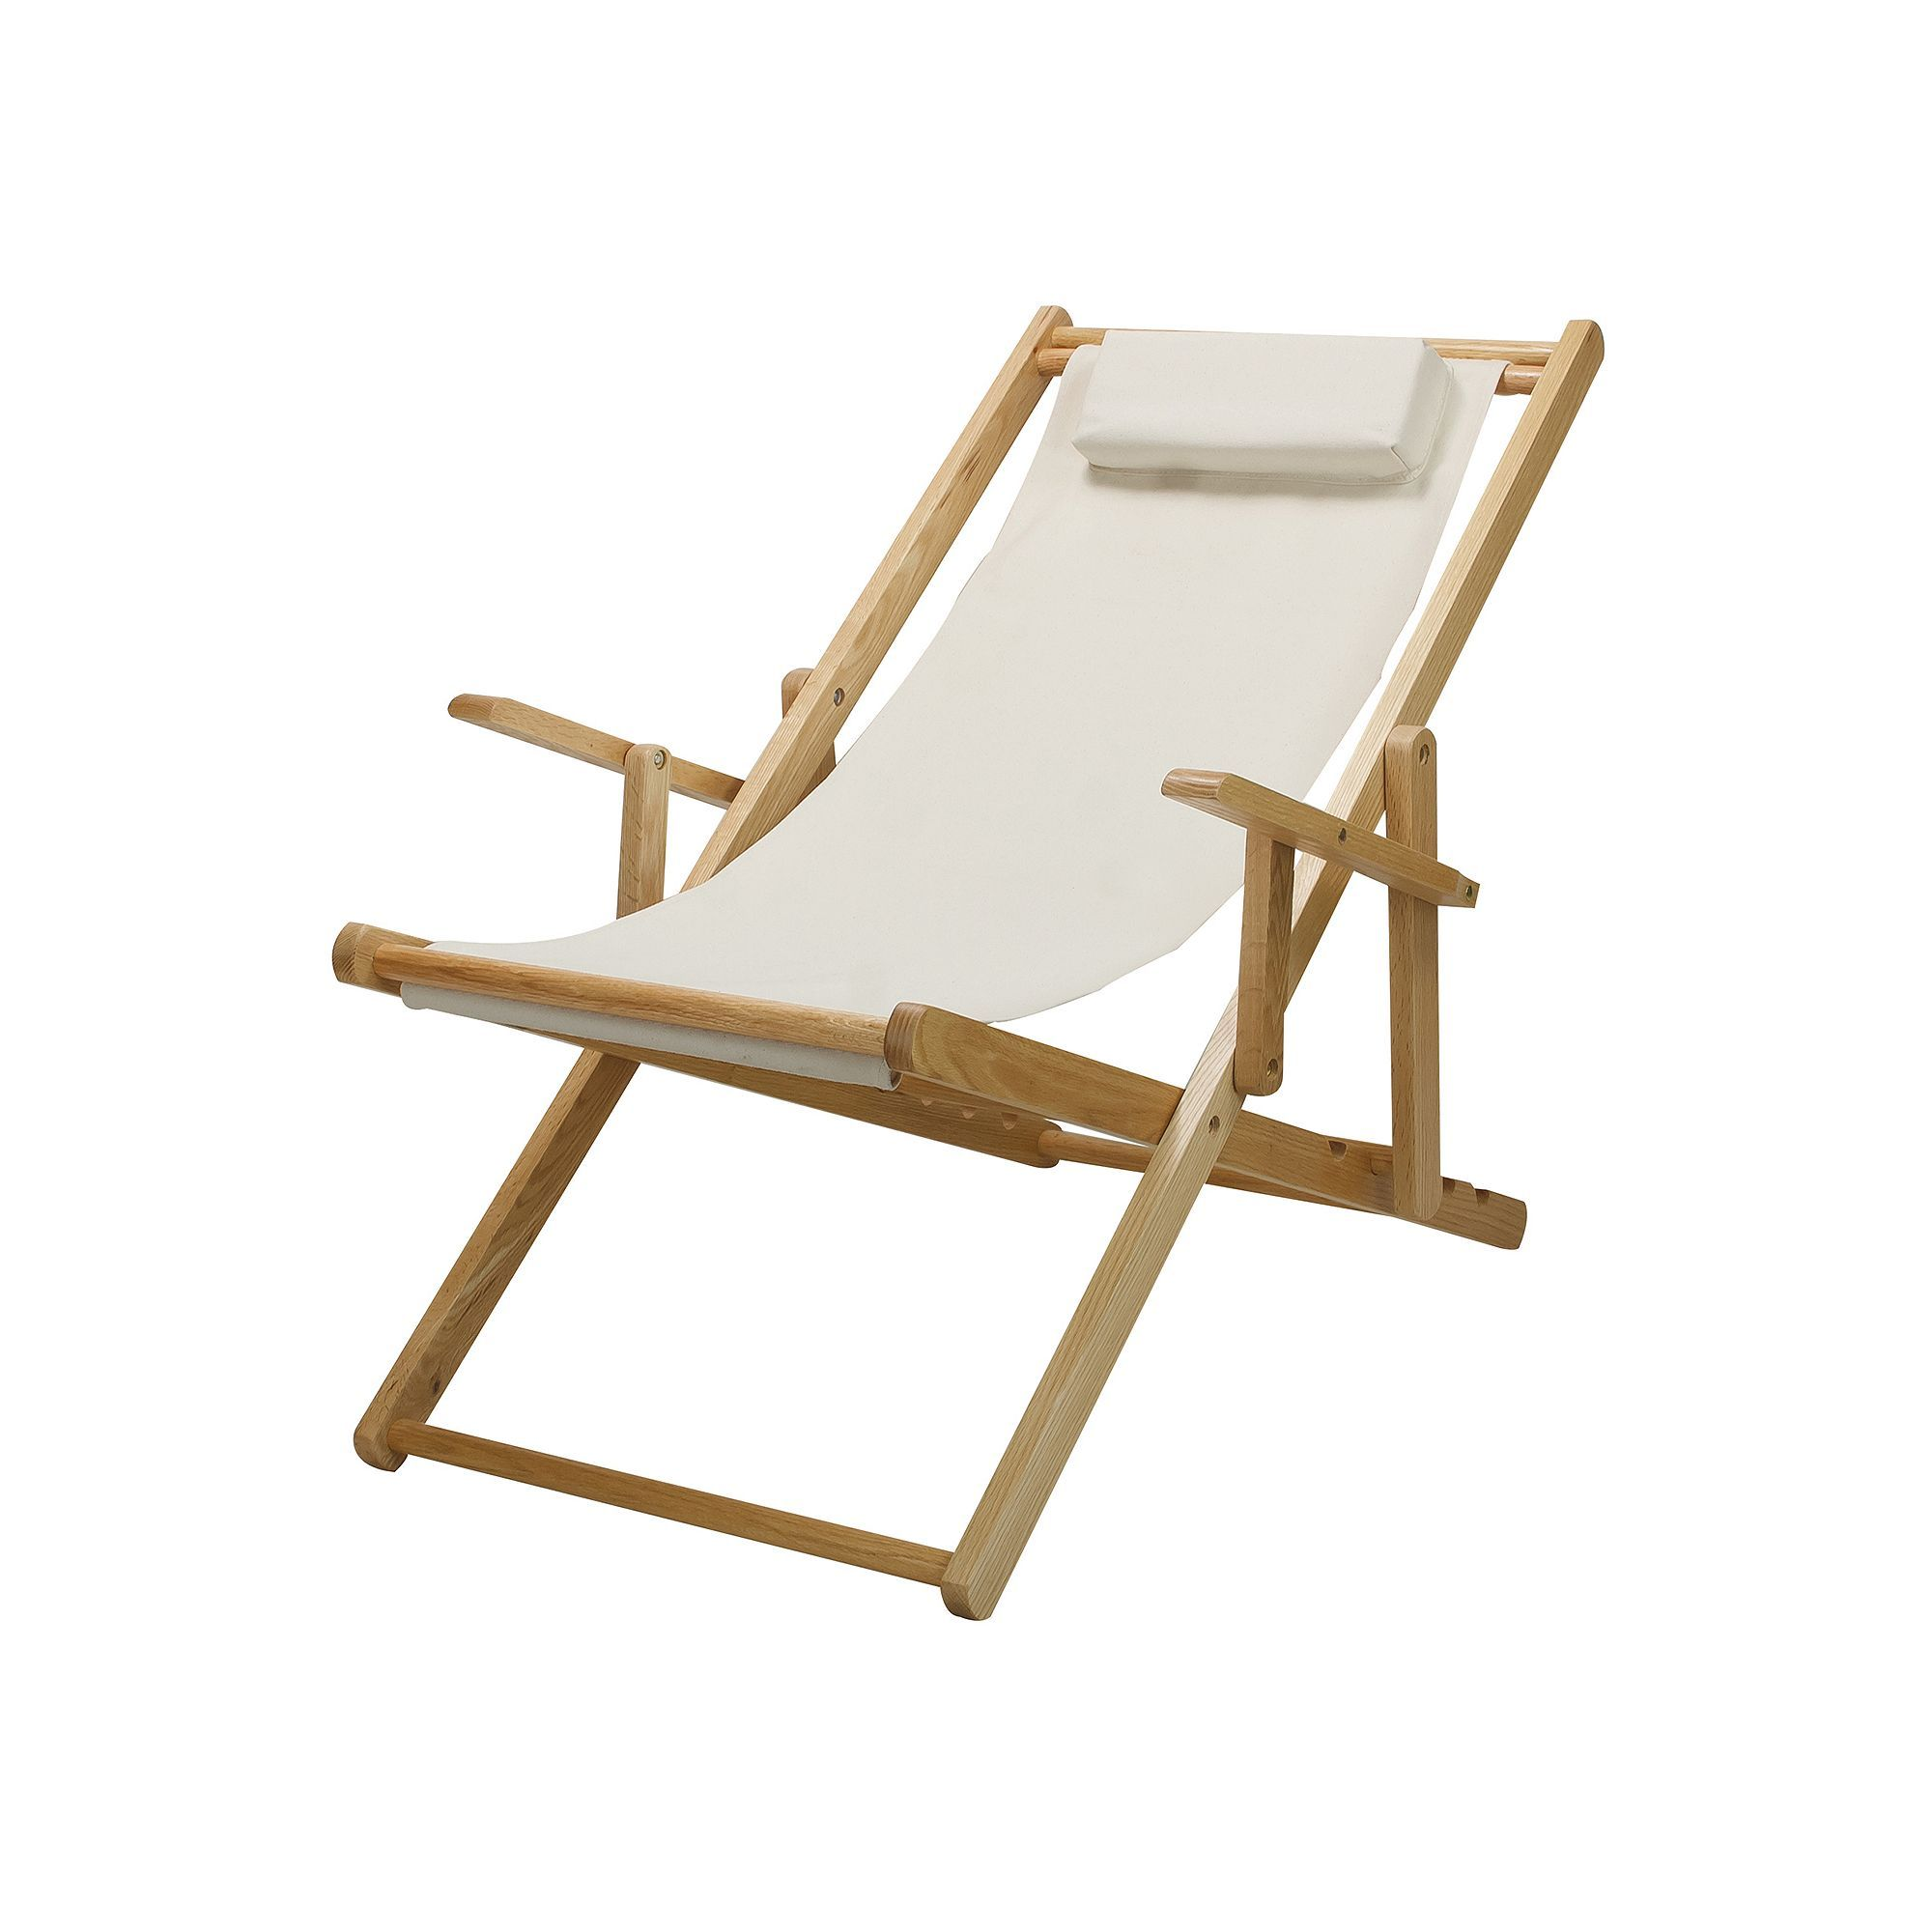 outdoor sling chairs. Casual Home Sling Chair Outdoor Chairs